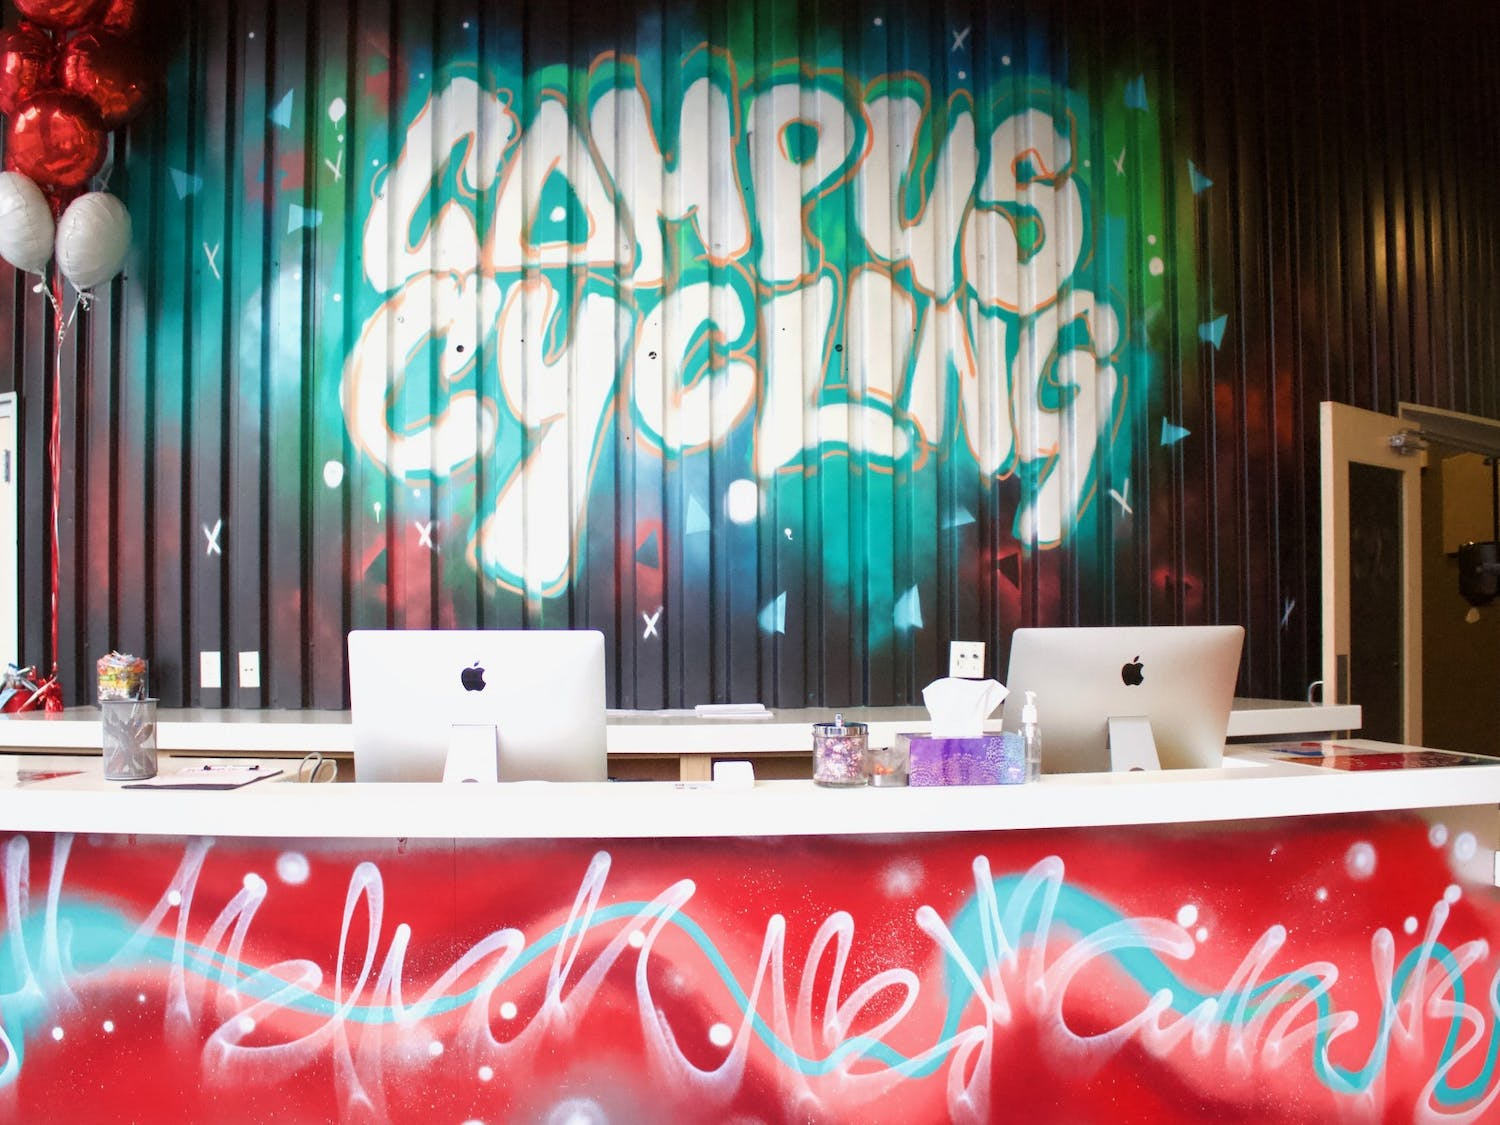 Following Cyc's abrupt closure in September, avid spinners and instructors banded together to create Campus Cycling, a new spinning studio temporarily located at Cyc's former location.